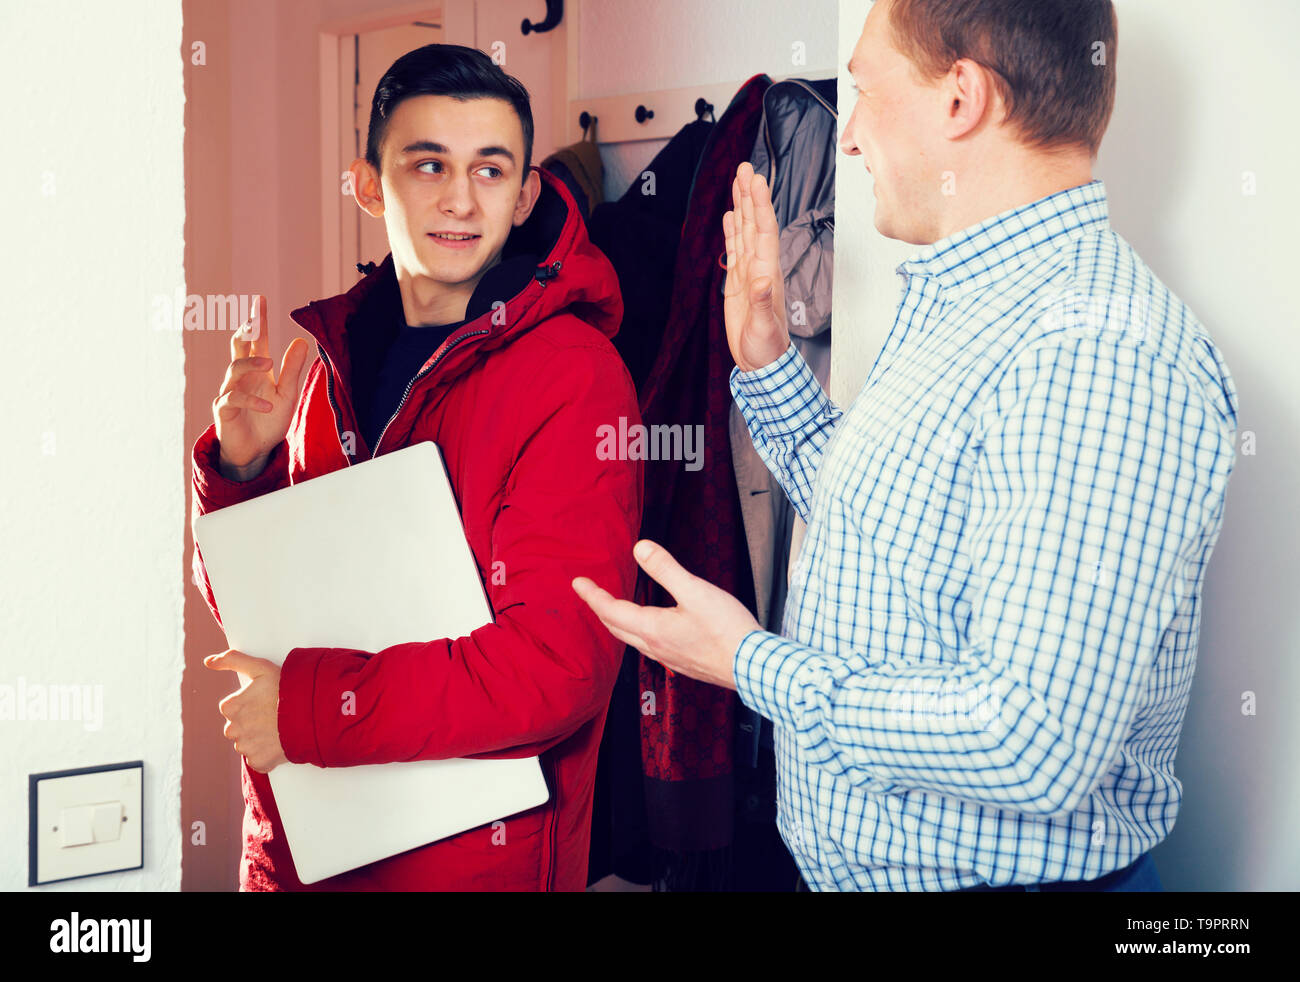 Adult male with his son are saying goodbye before school at the home. - Stock Image